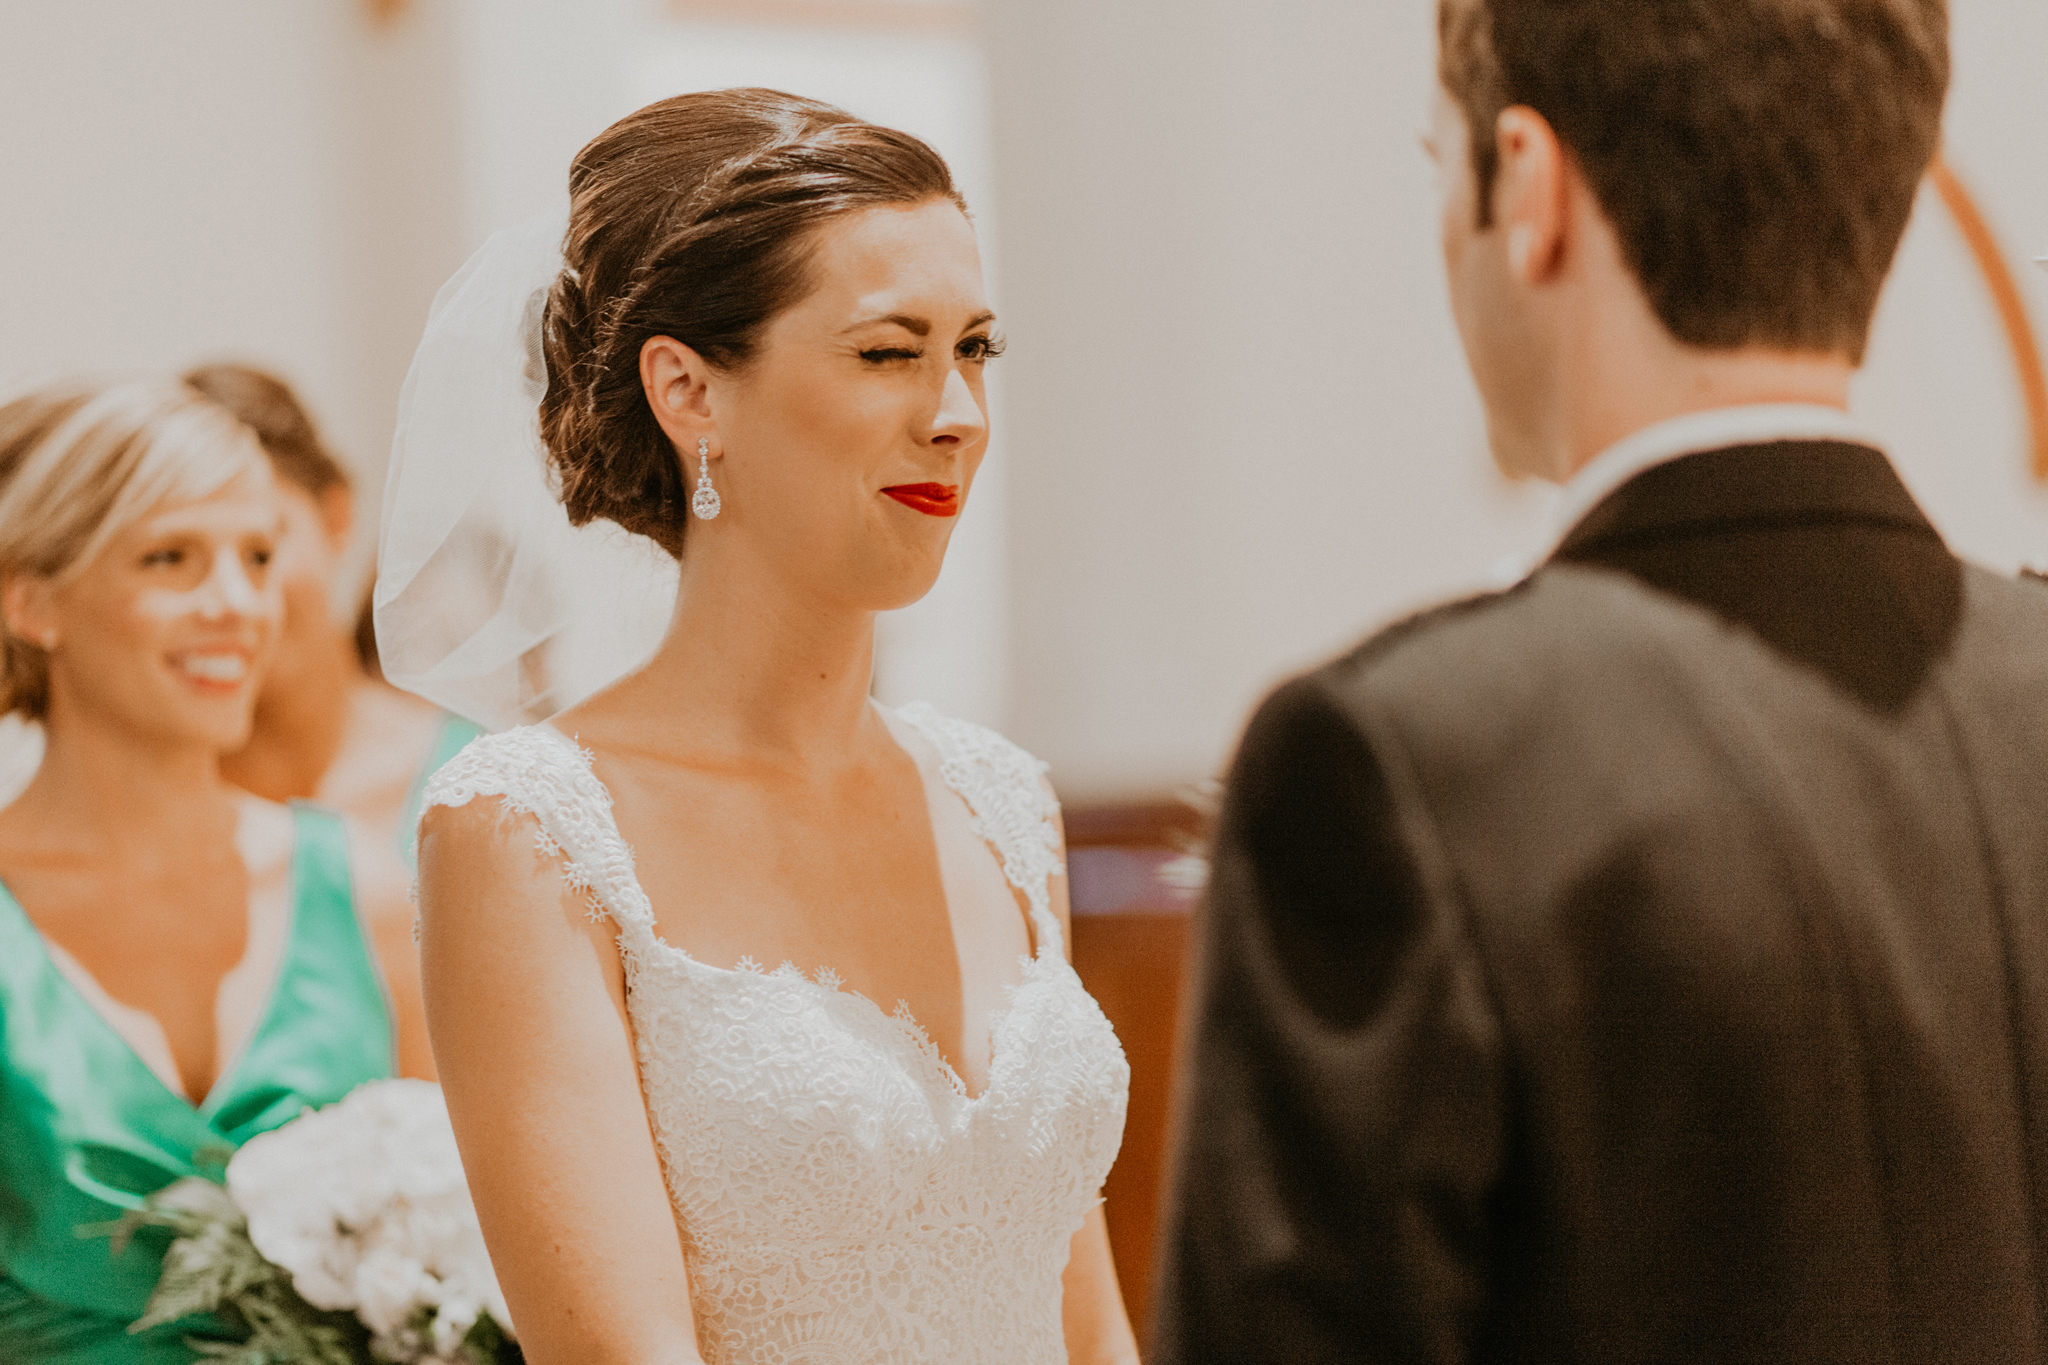 Bride winks at groom during wedding ceremony